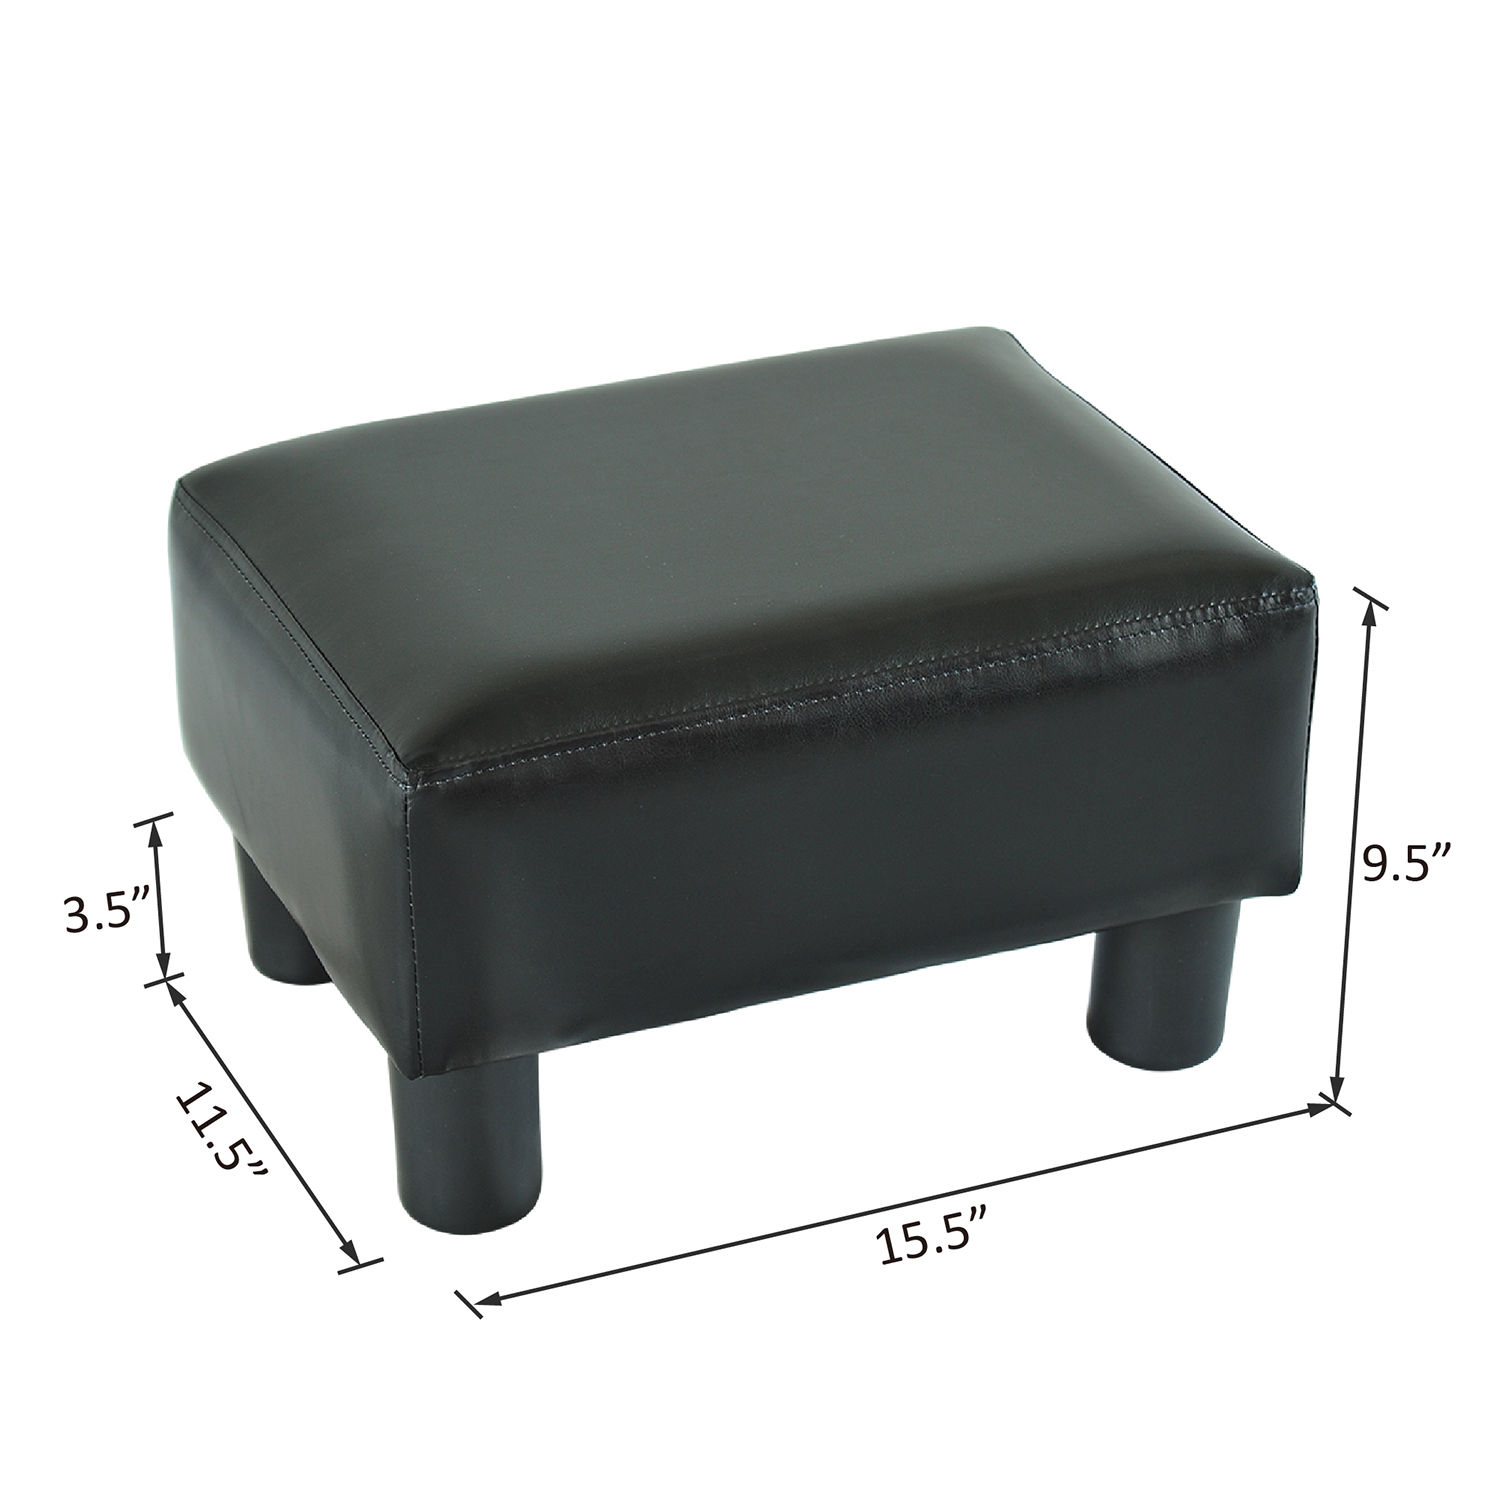 chair stool sofa tranquil lift modern faux leather ottoman footrest foot rest small